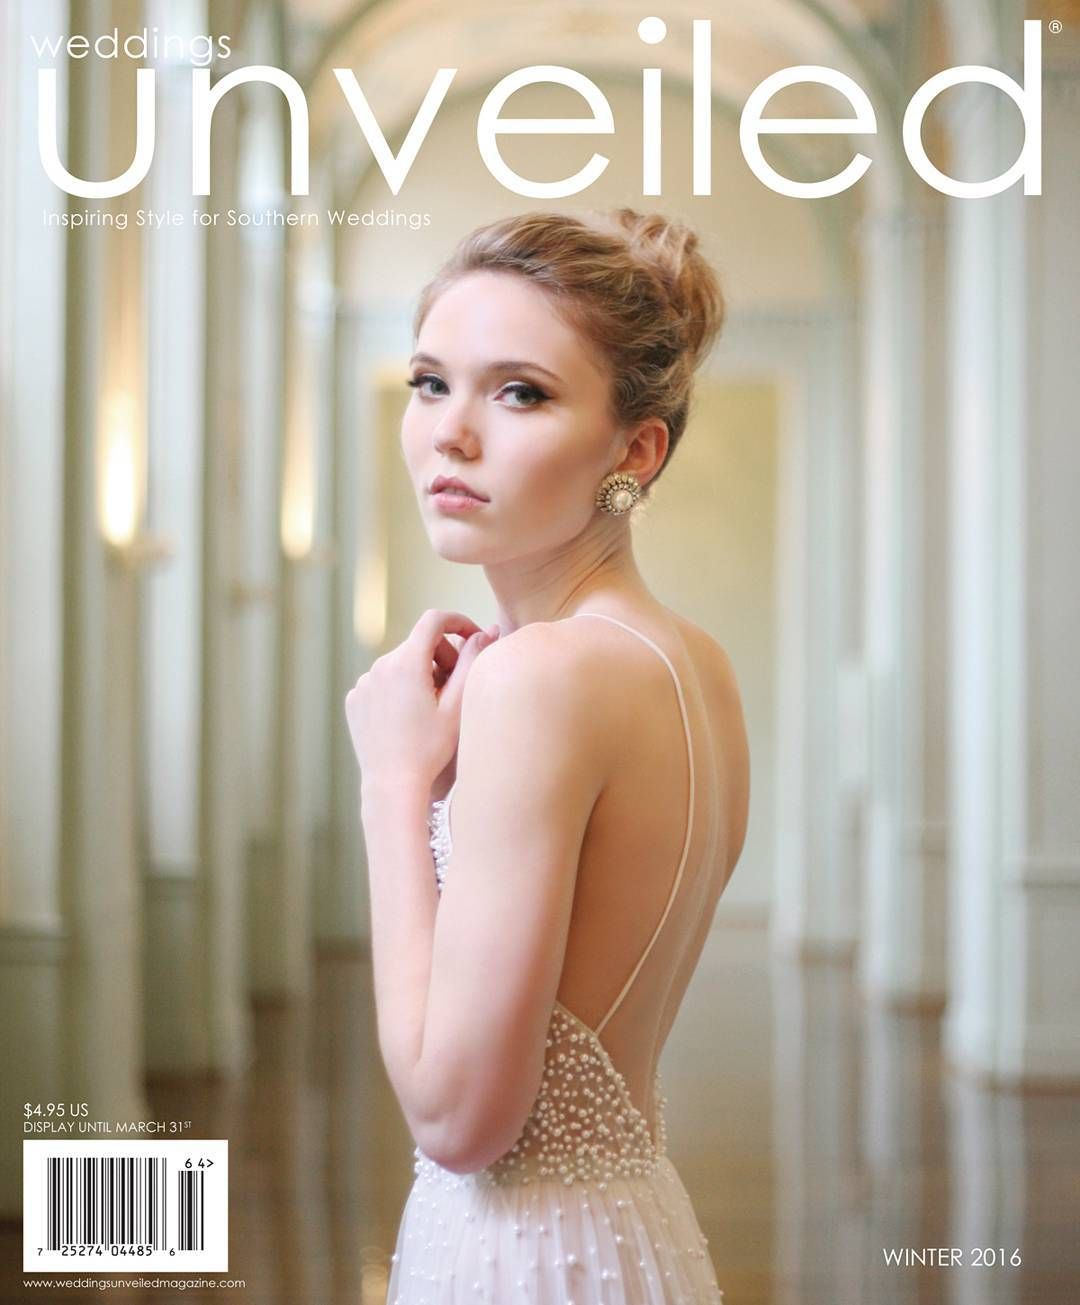 The Winter 2016 Issue Cover Of Weddings Unveiled